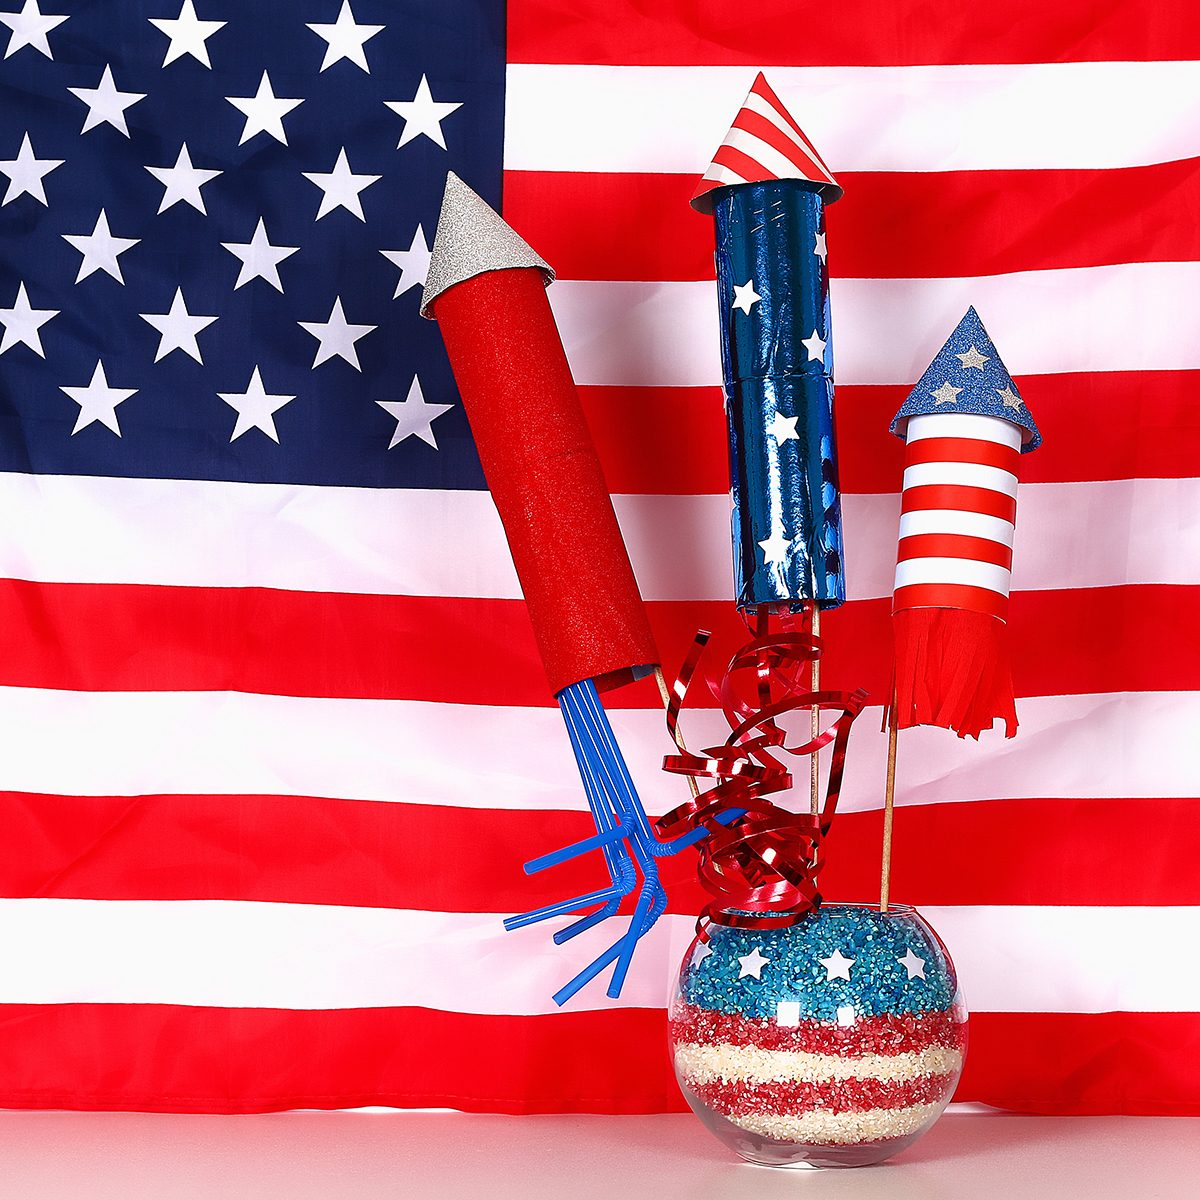 Https Www Tasteofhome Com Collection 4th Of July Crafts For Kids